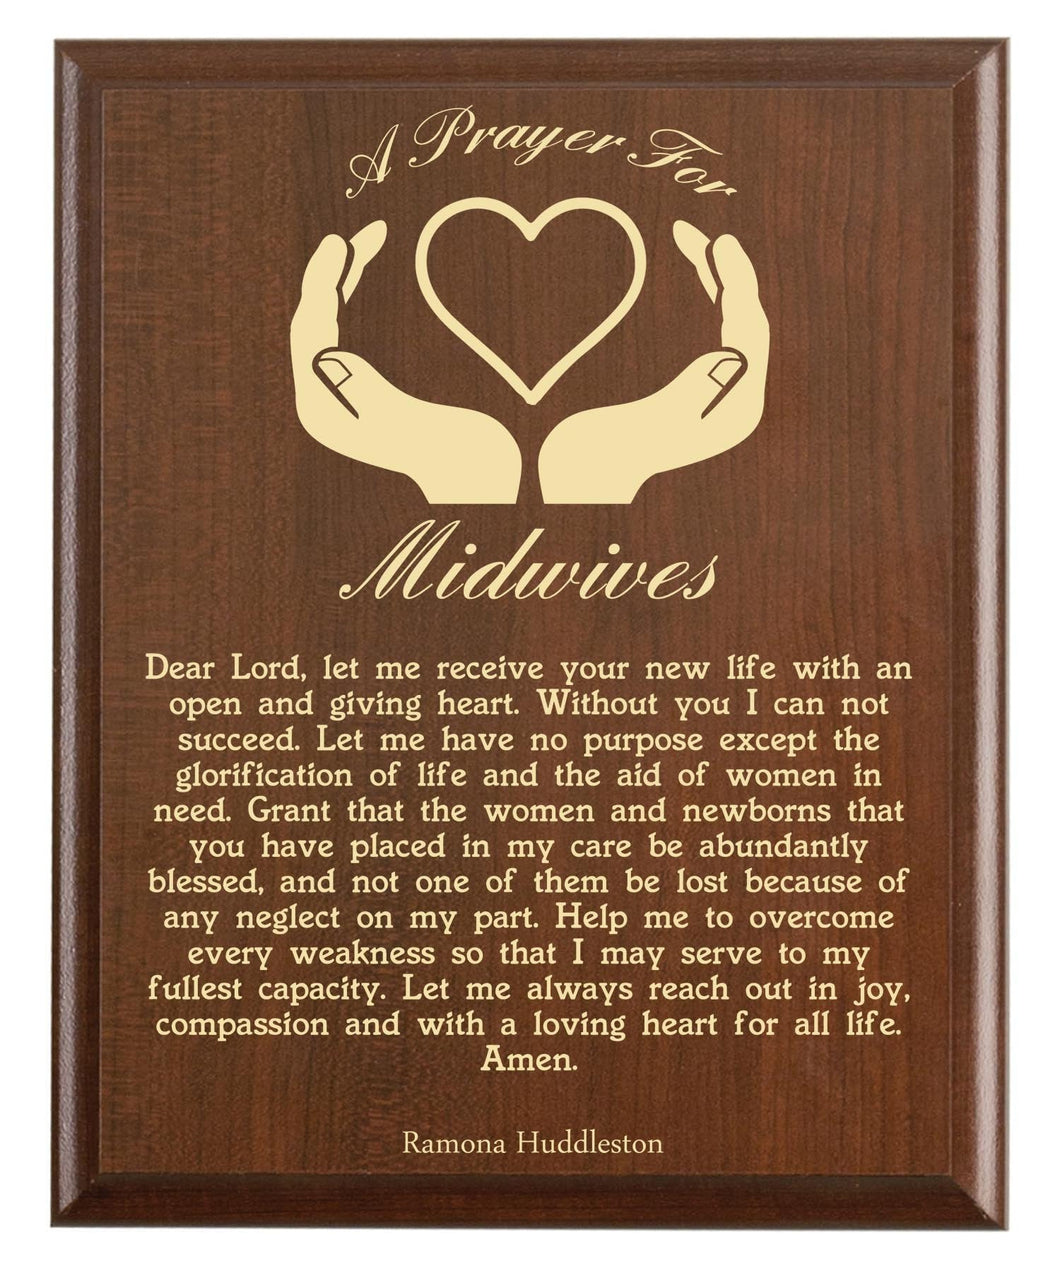 Christian prayer for a midwive with industry logo and free personalization. Cherry finish with laser engraved text.